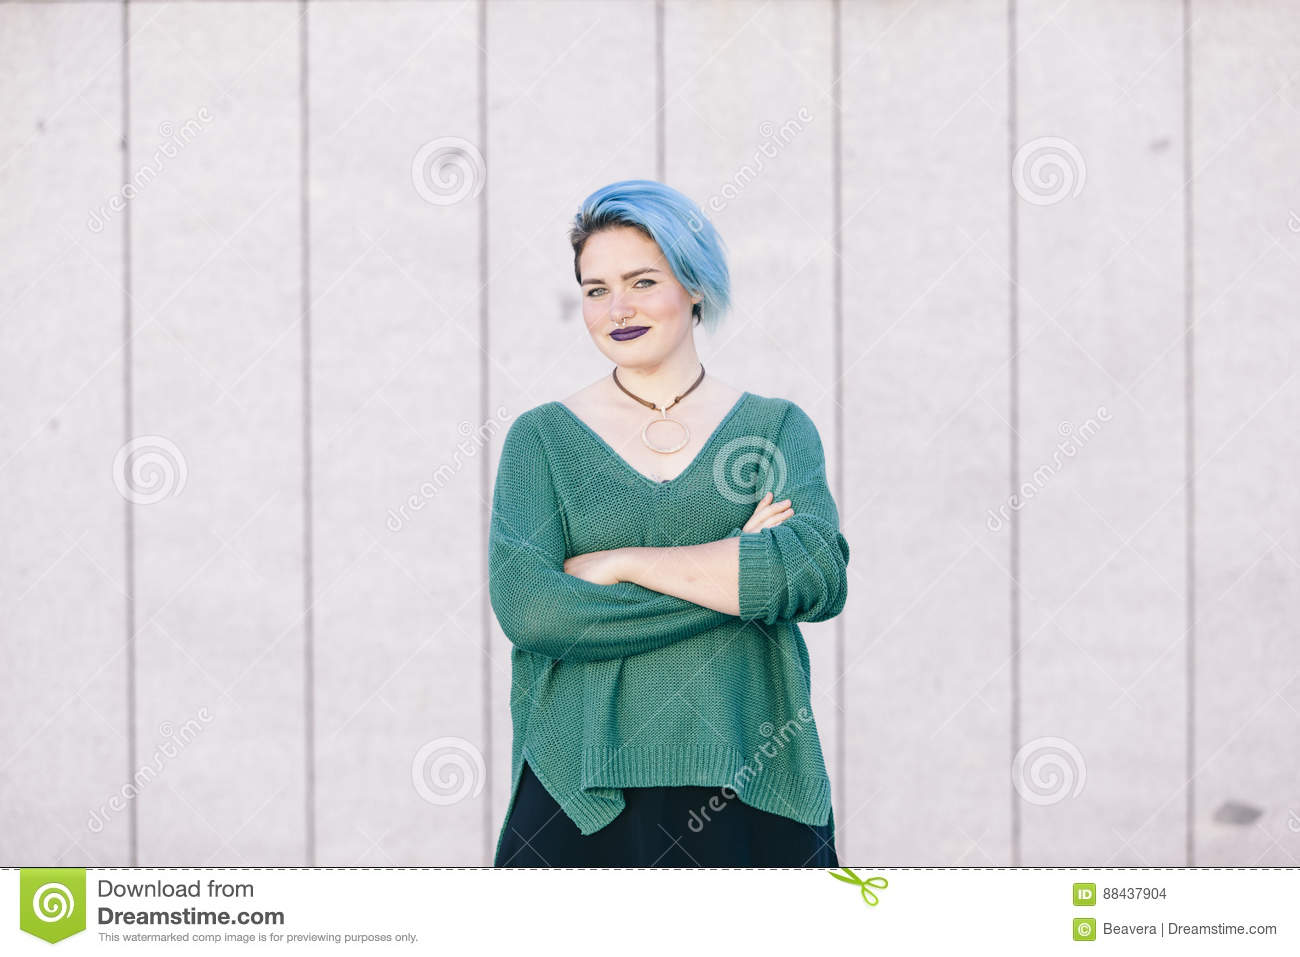 Portrait of a teen androgynous woman with blue dyed hair isolate